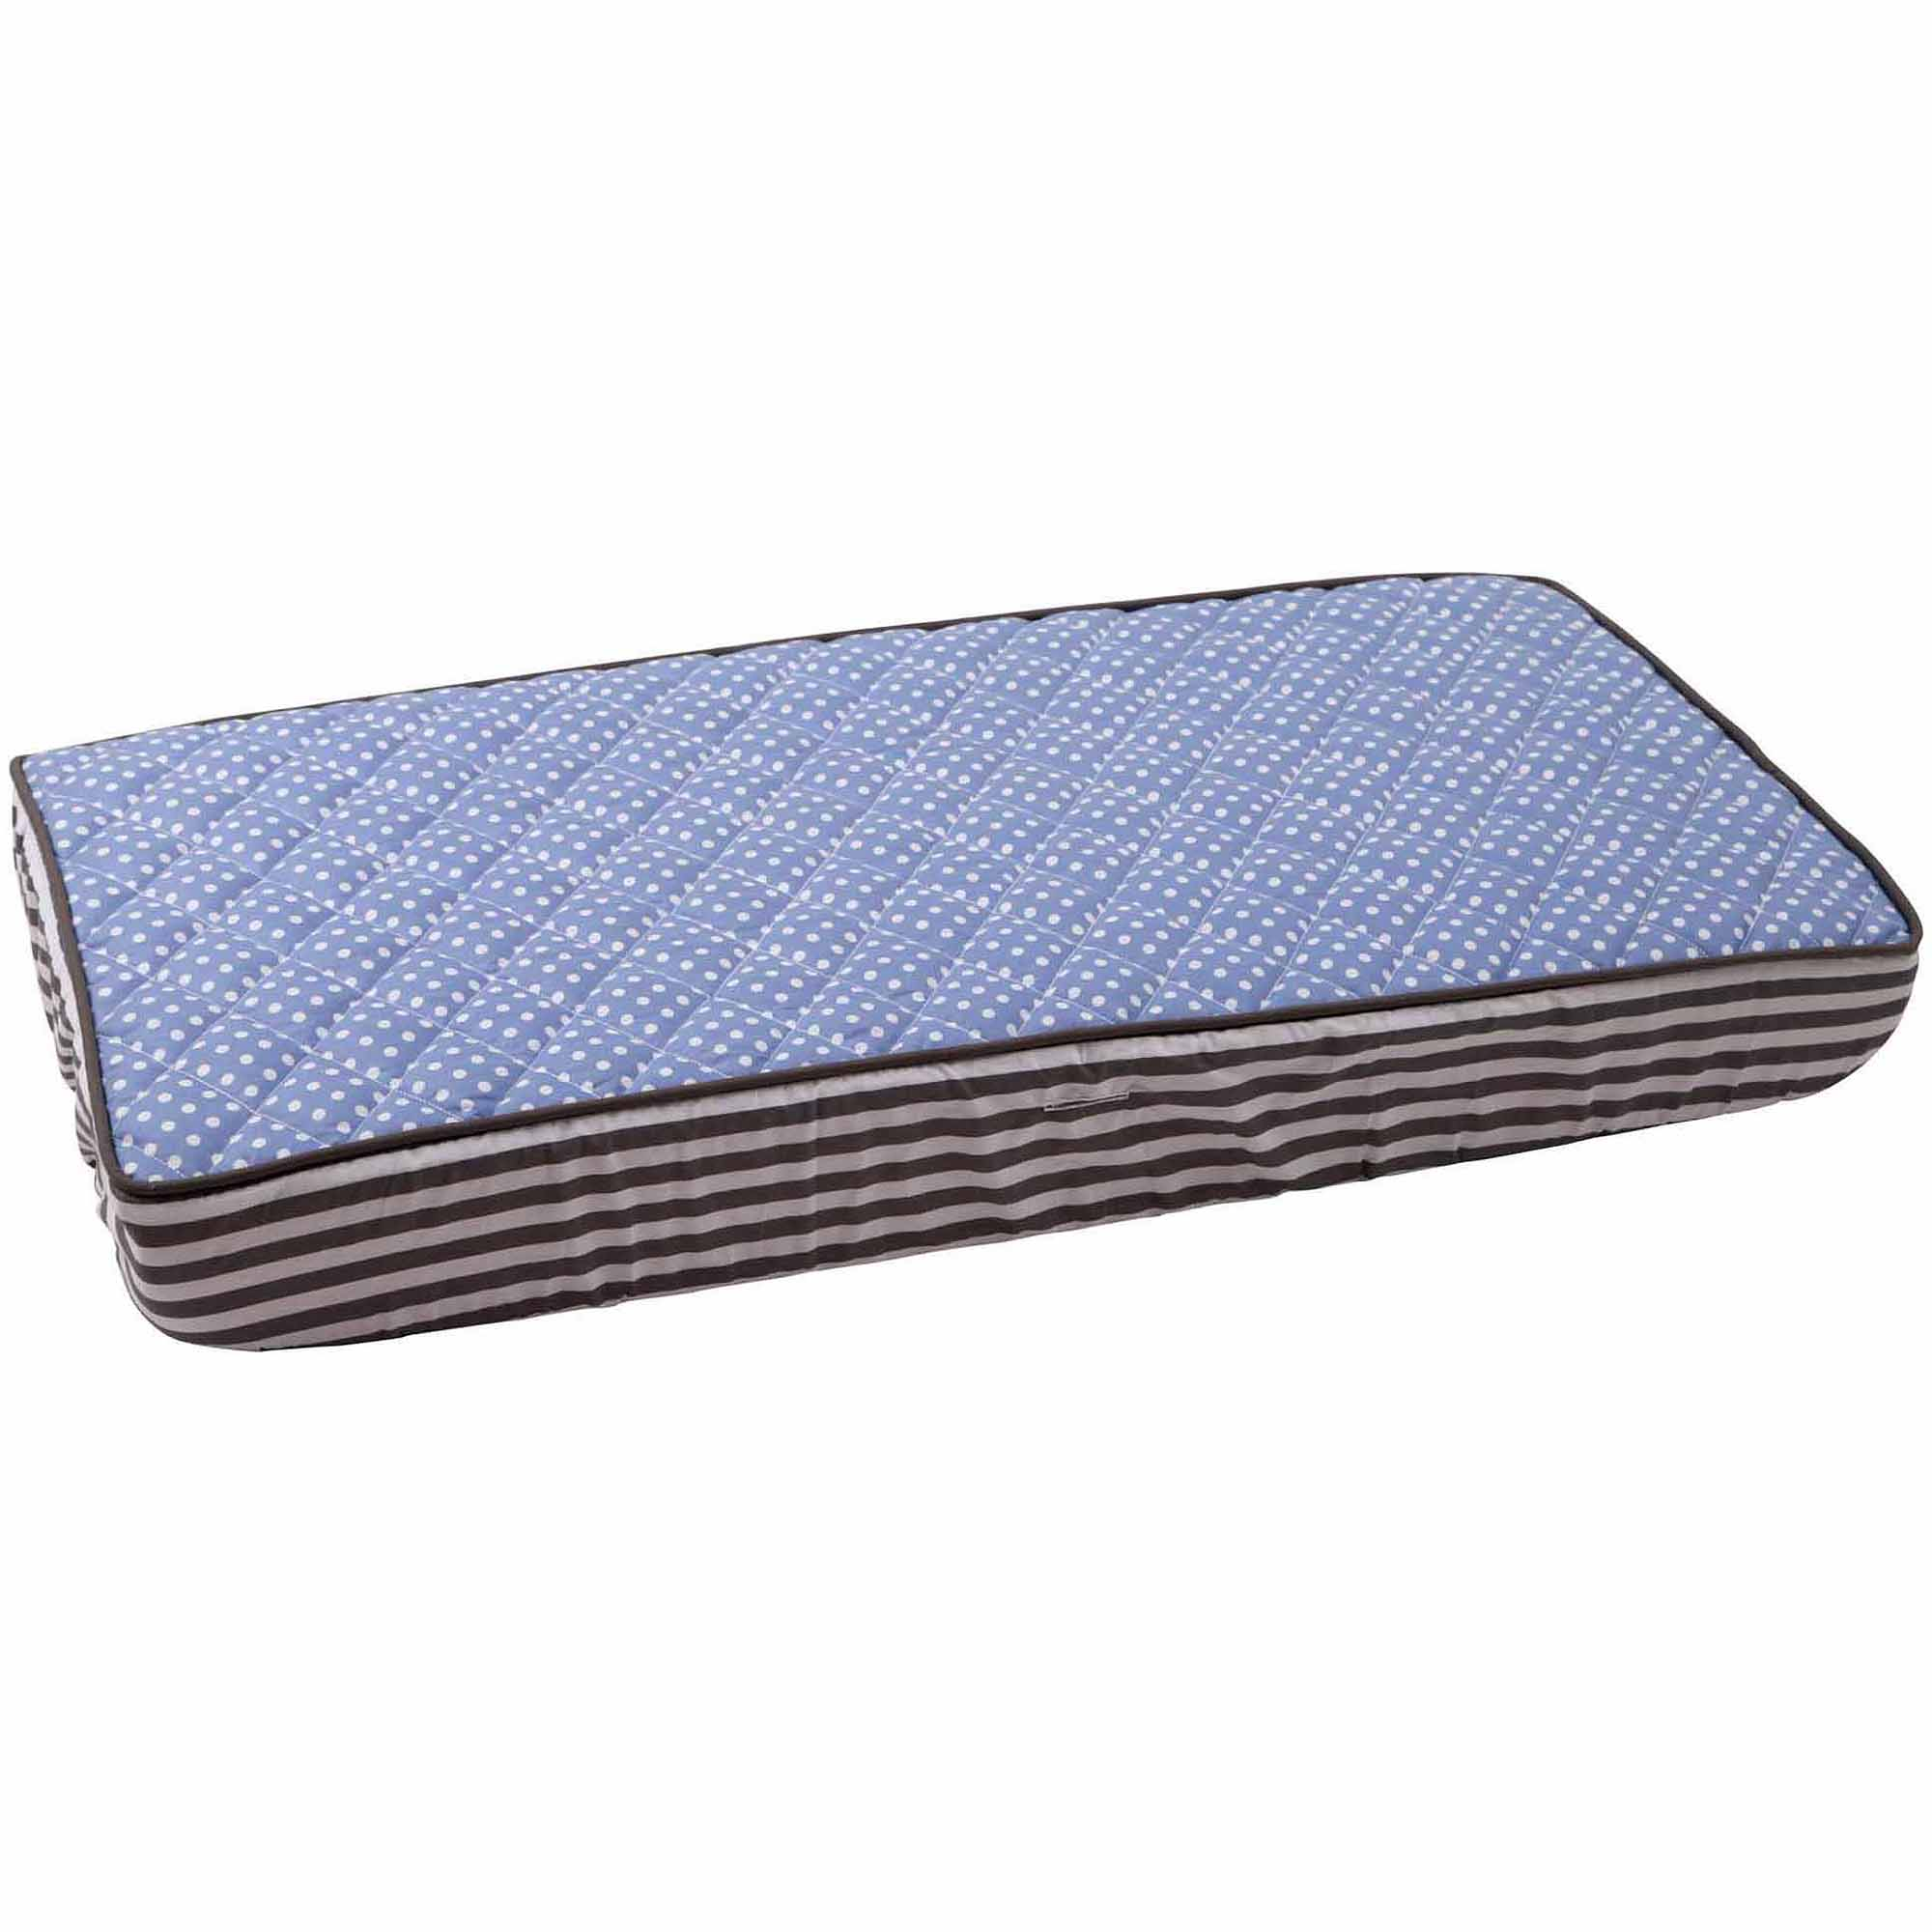 Bacati Elephants Pin Dots Changing Pad Cover, Blue/Gray